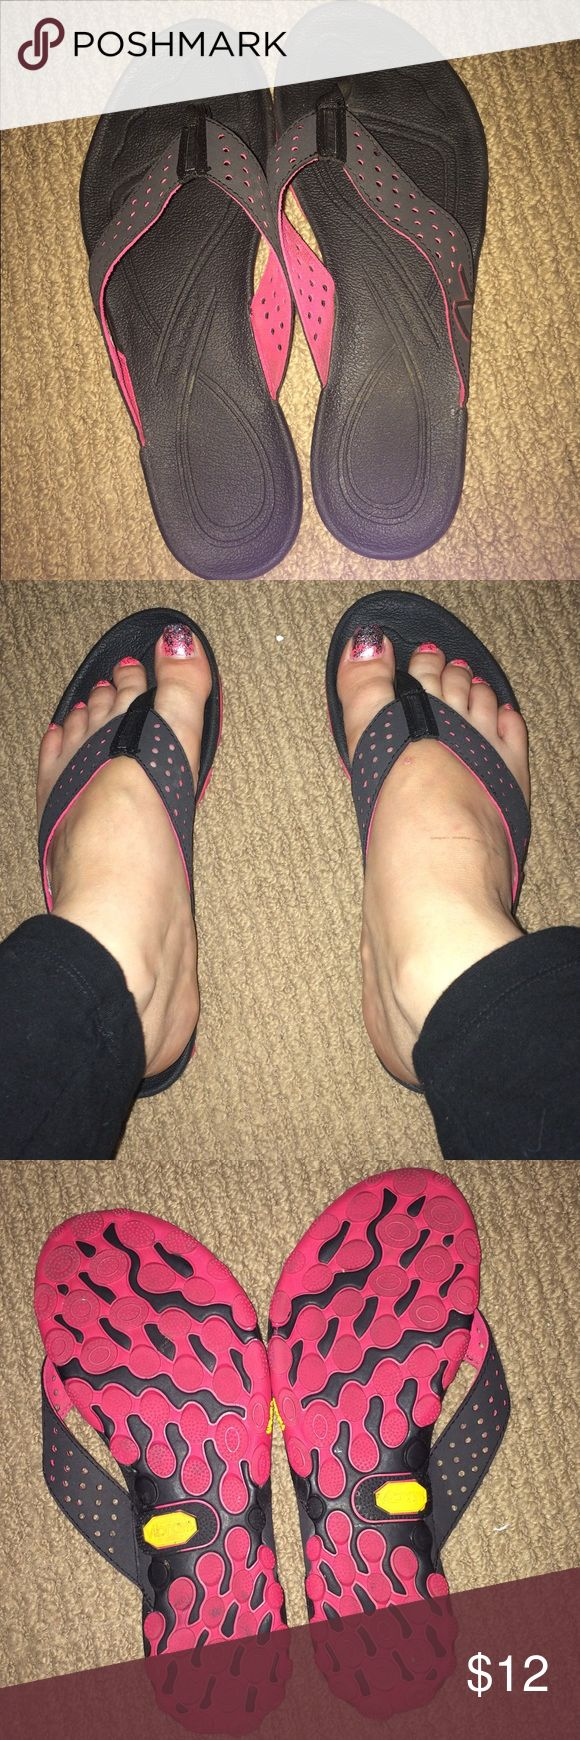 👡New Balance Flip flop sandals - black size 7 Only wore 2-3 times. Great Condition! All Black New Balance sandals. The bottom is a deep pink color. Size 7. Comfortable sandals New Balance Shoes Sandals